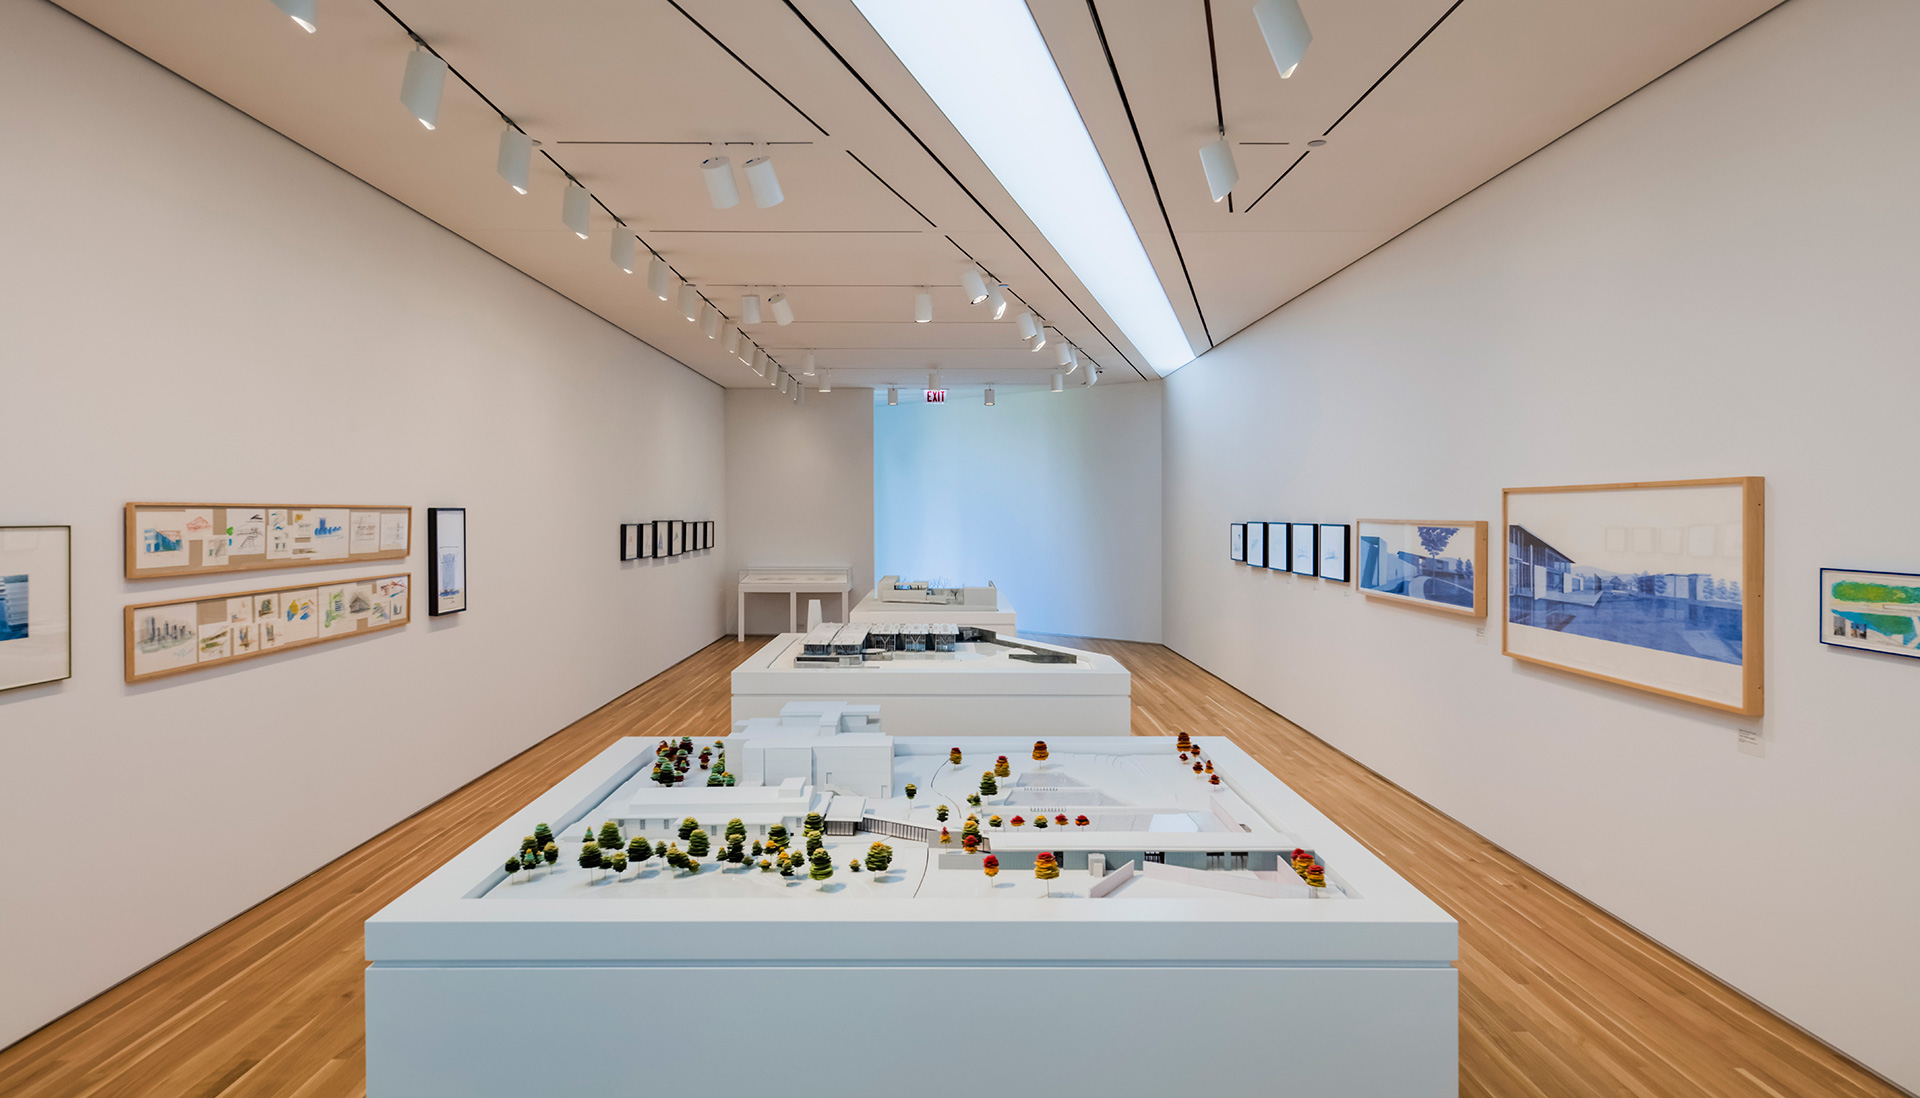 Drawings, photographs, and models on display at the inaugural exhibition| Wrightwood 659| Tadao Ando| STIR